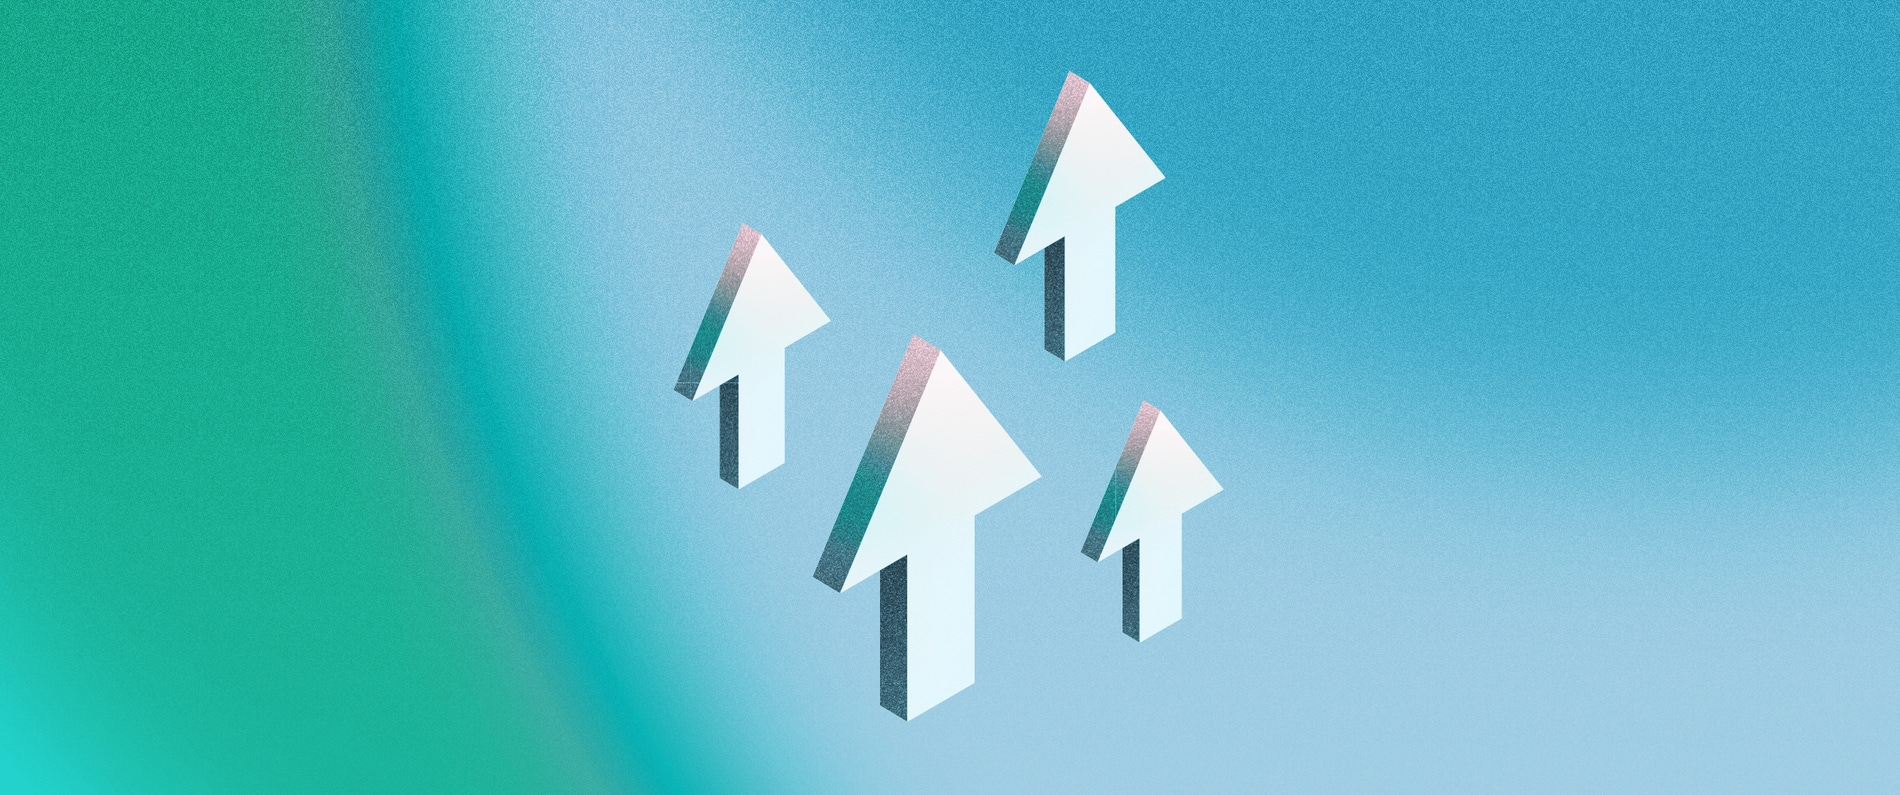 A 3D illustration of arrows pointing upwards around a 3D cloud, on a blue background.